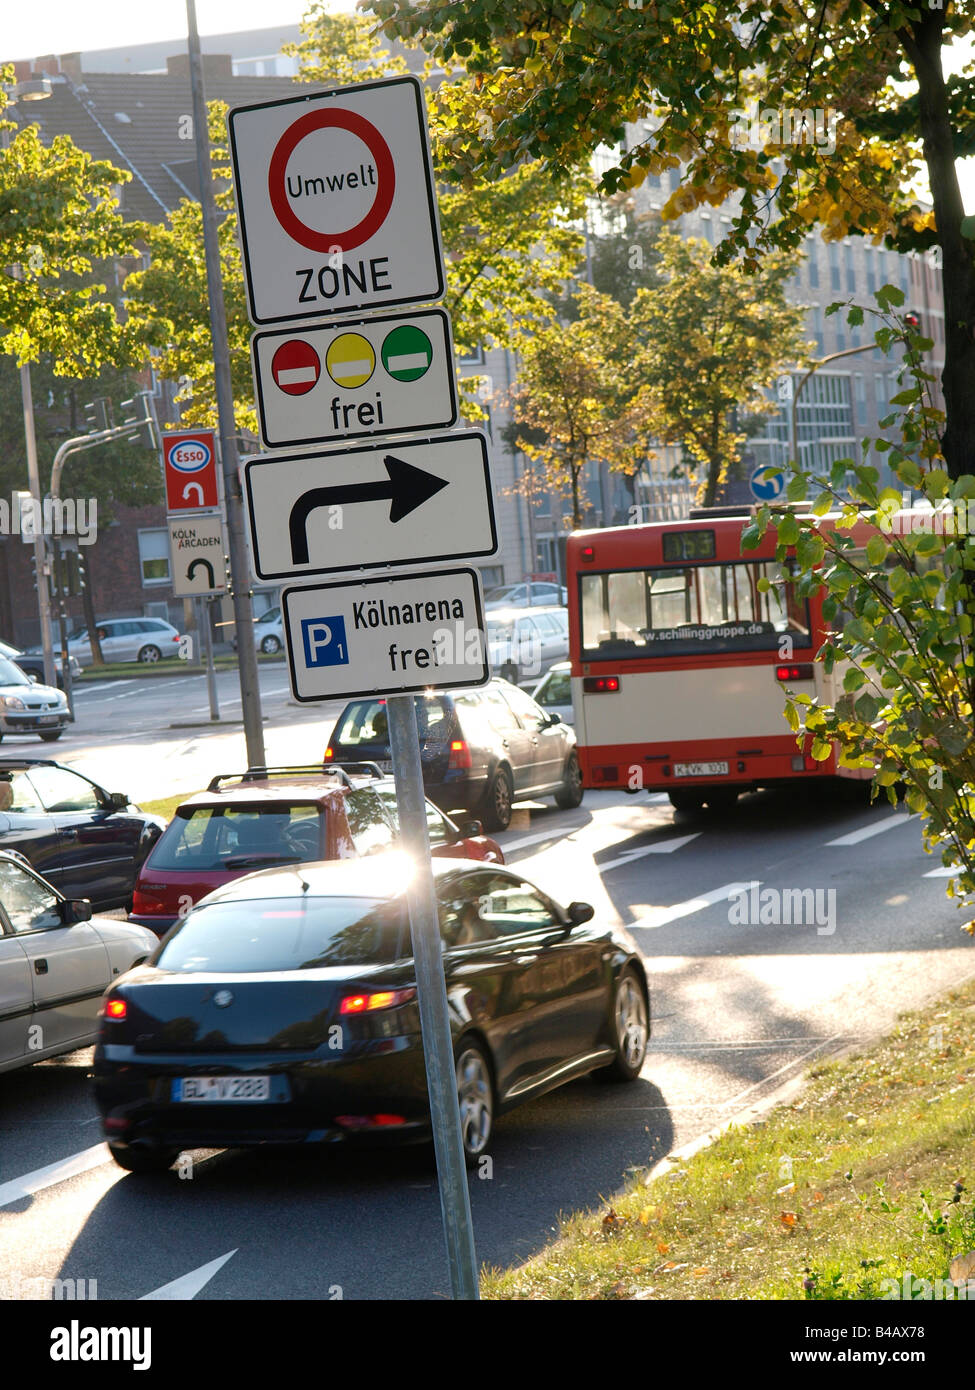 Cars entering the umwelt zone environmental zone in the city centre of Cologne Germany need to have a special sticker - Stock Image